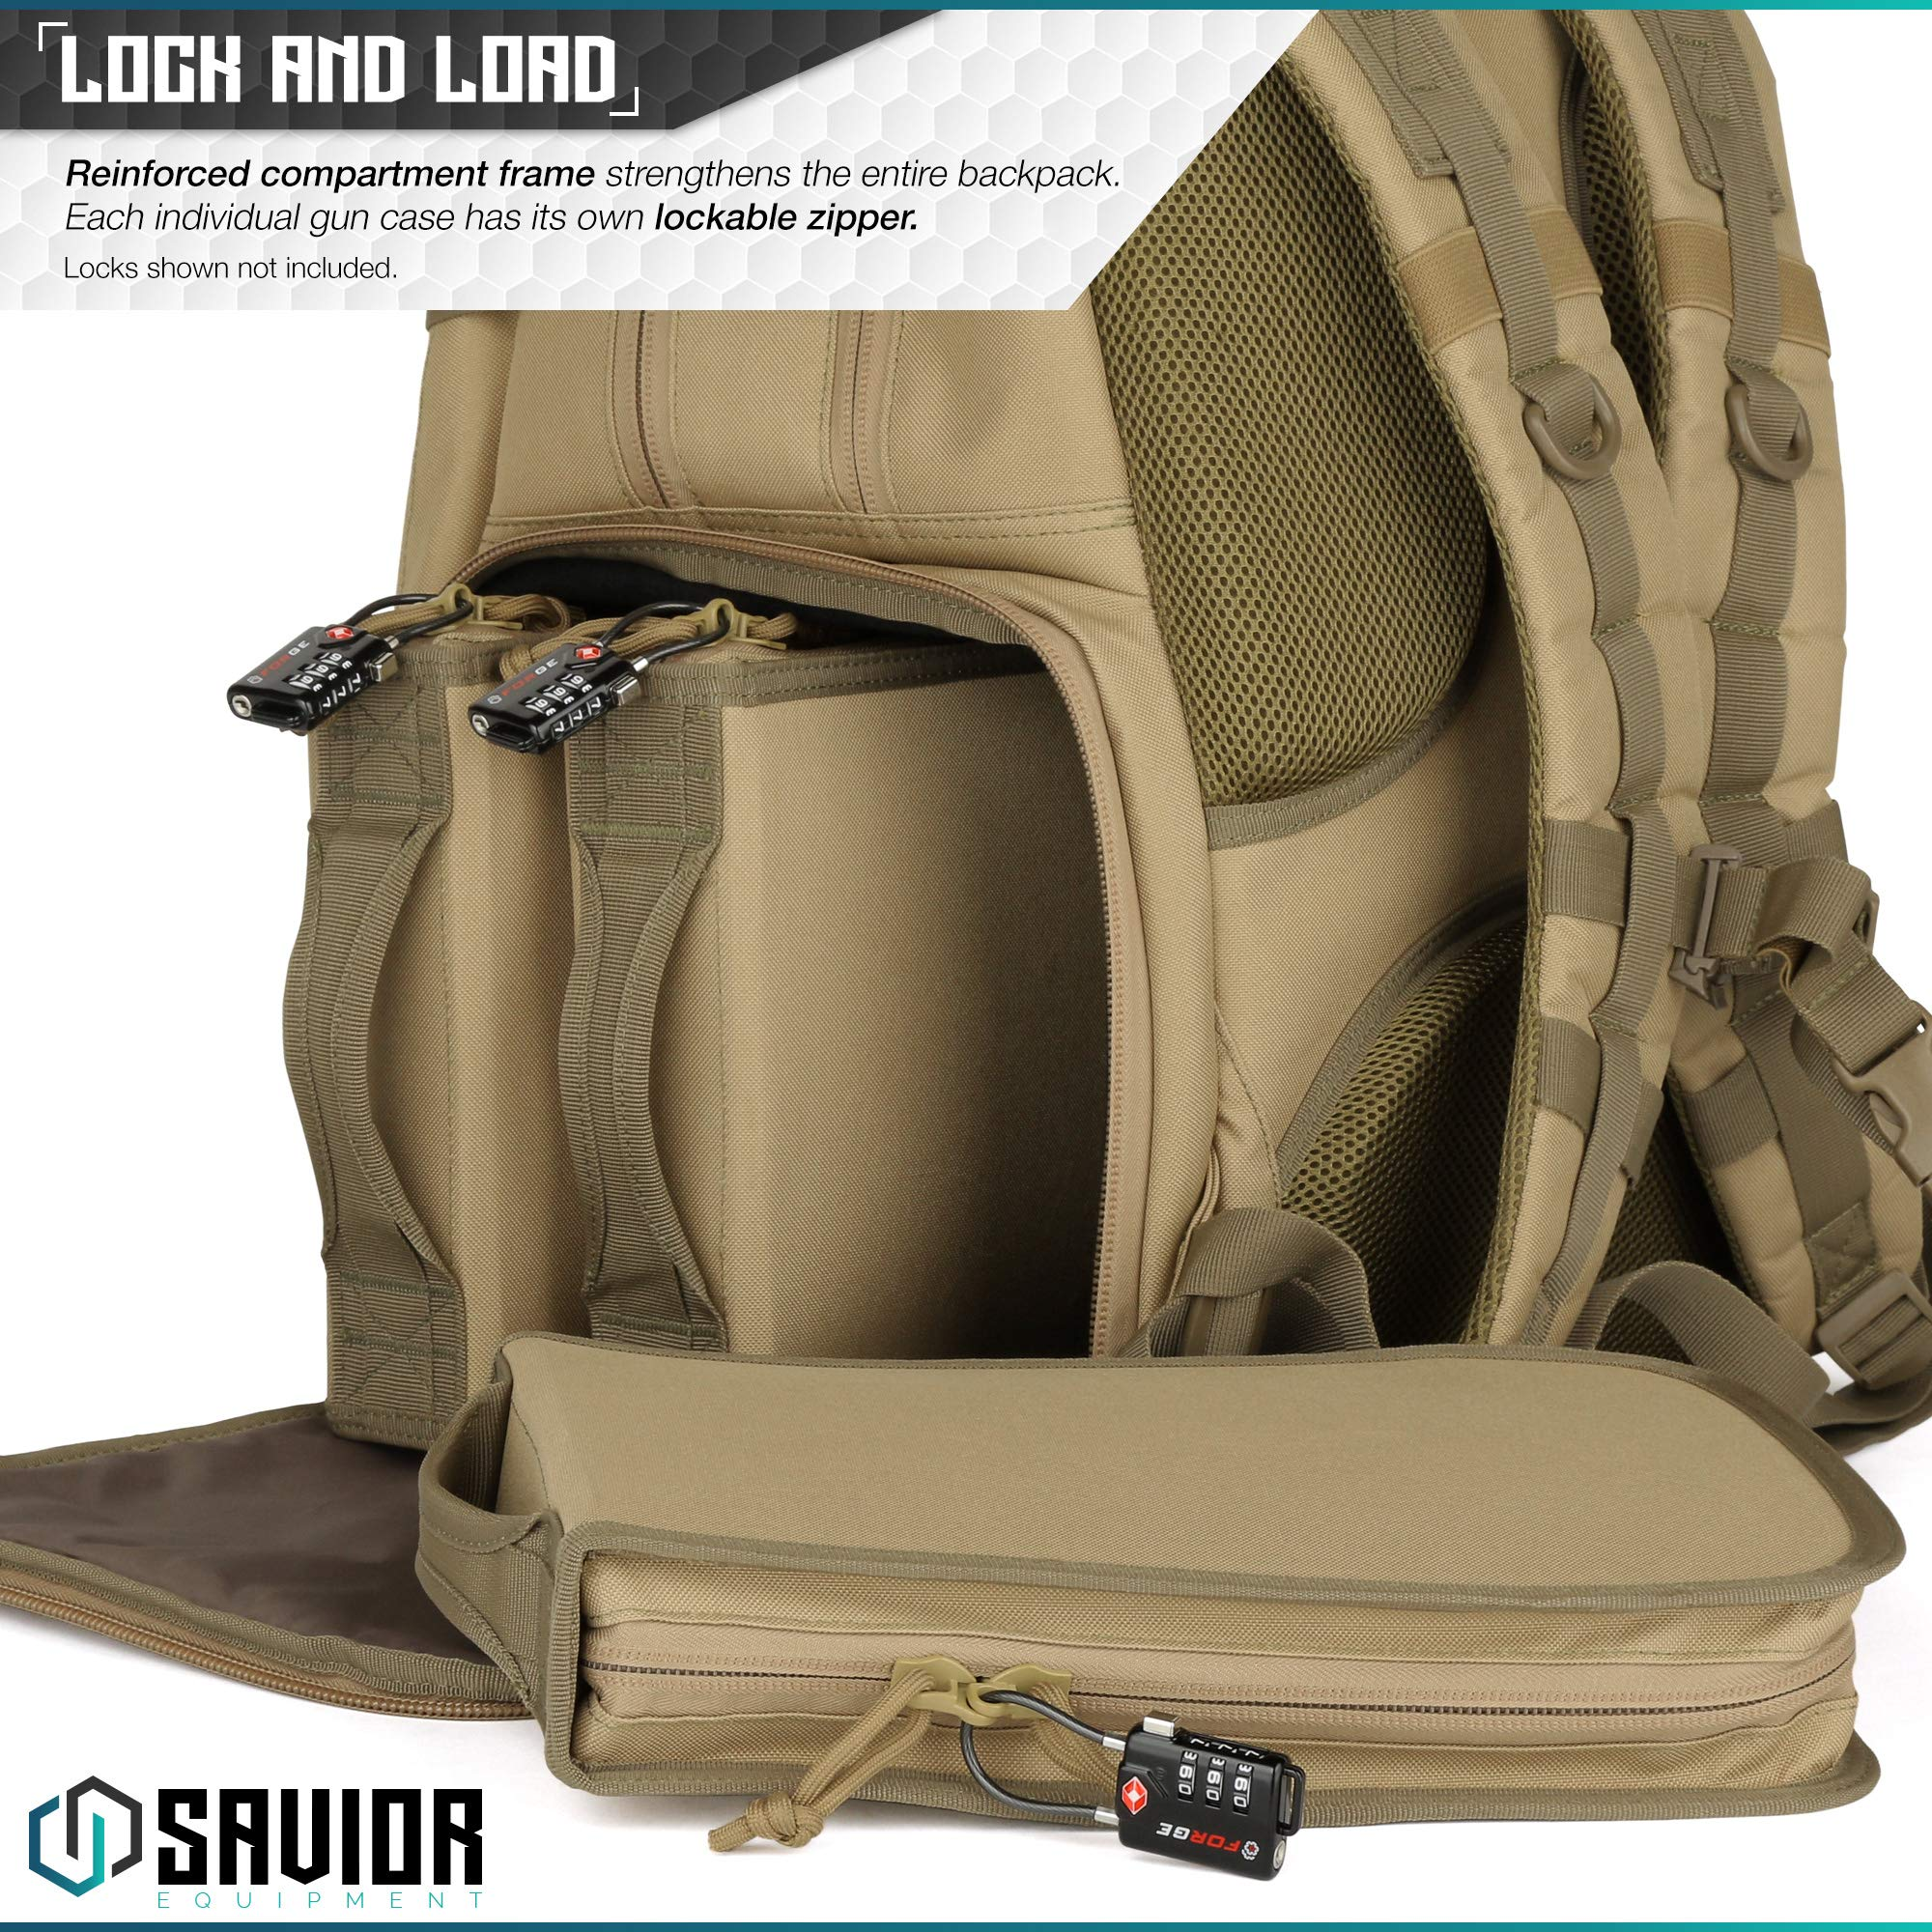 Savior Equipment Mobile Arsenal SEMA 27L Military Heavy-Duty Tactical Range Bag Backpack w/ 3 Separate Pistol Case - Laser-Cut Style MOLLE & Lockable Zippers, Raincover Included by Savior Equipment (Image #4)